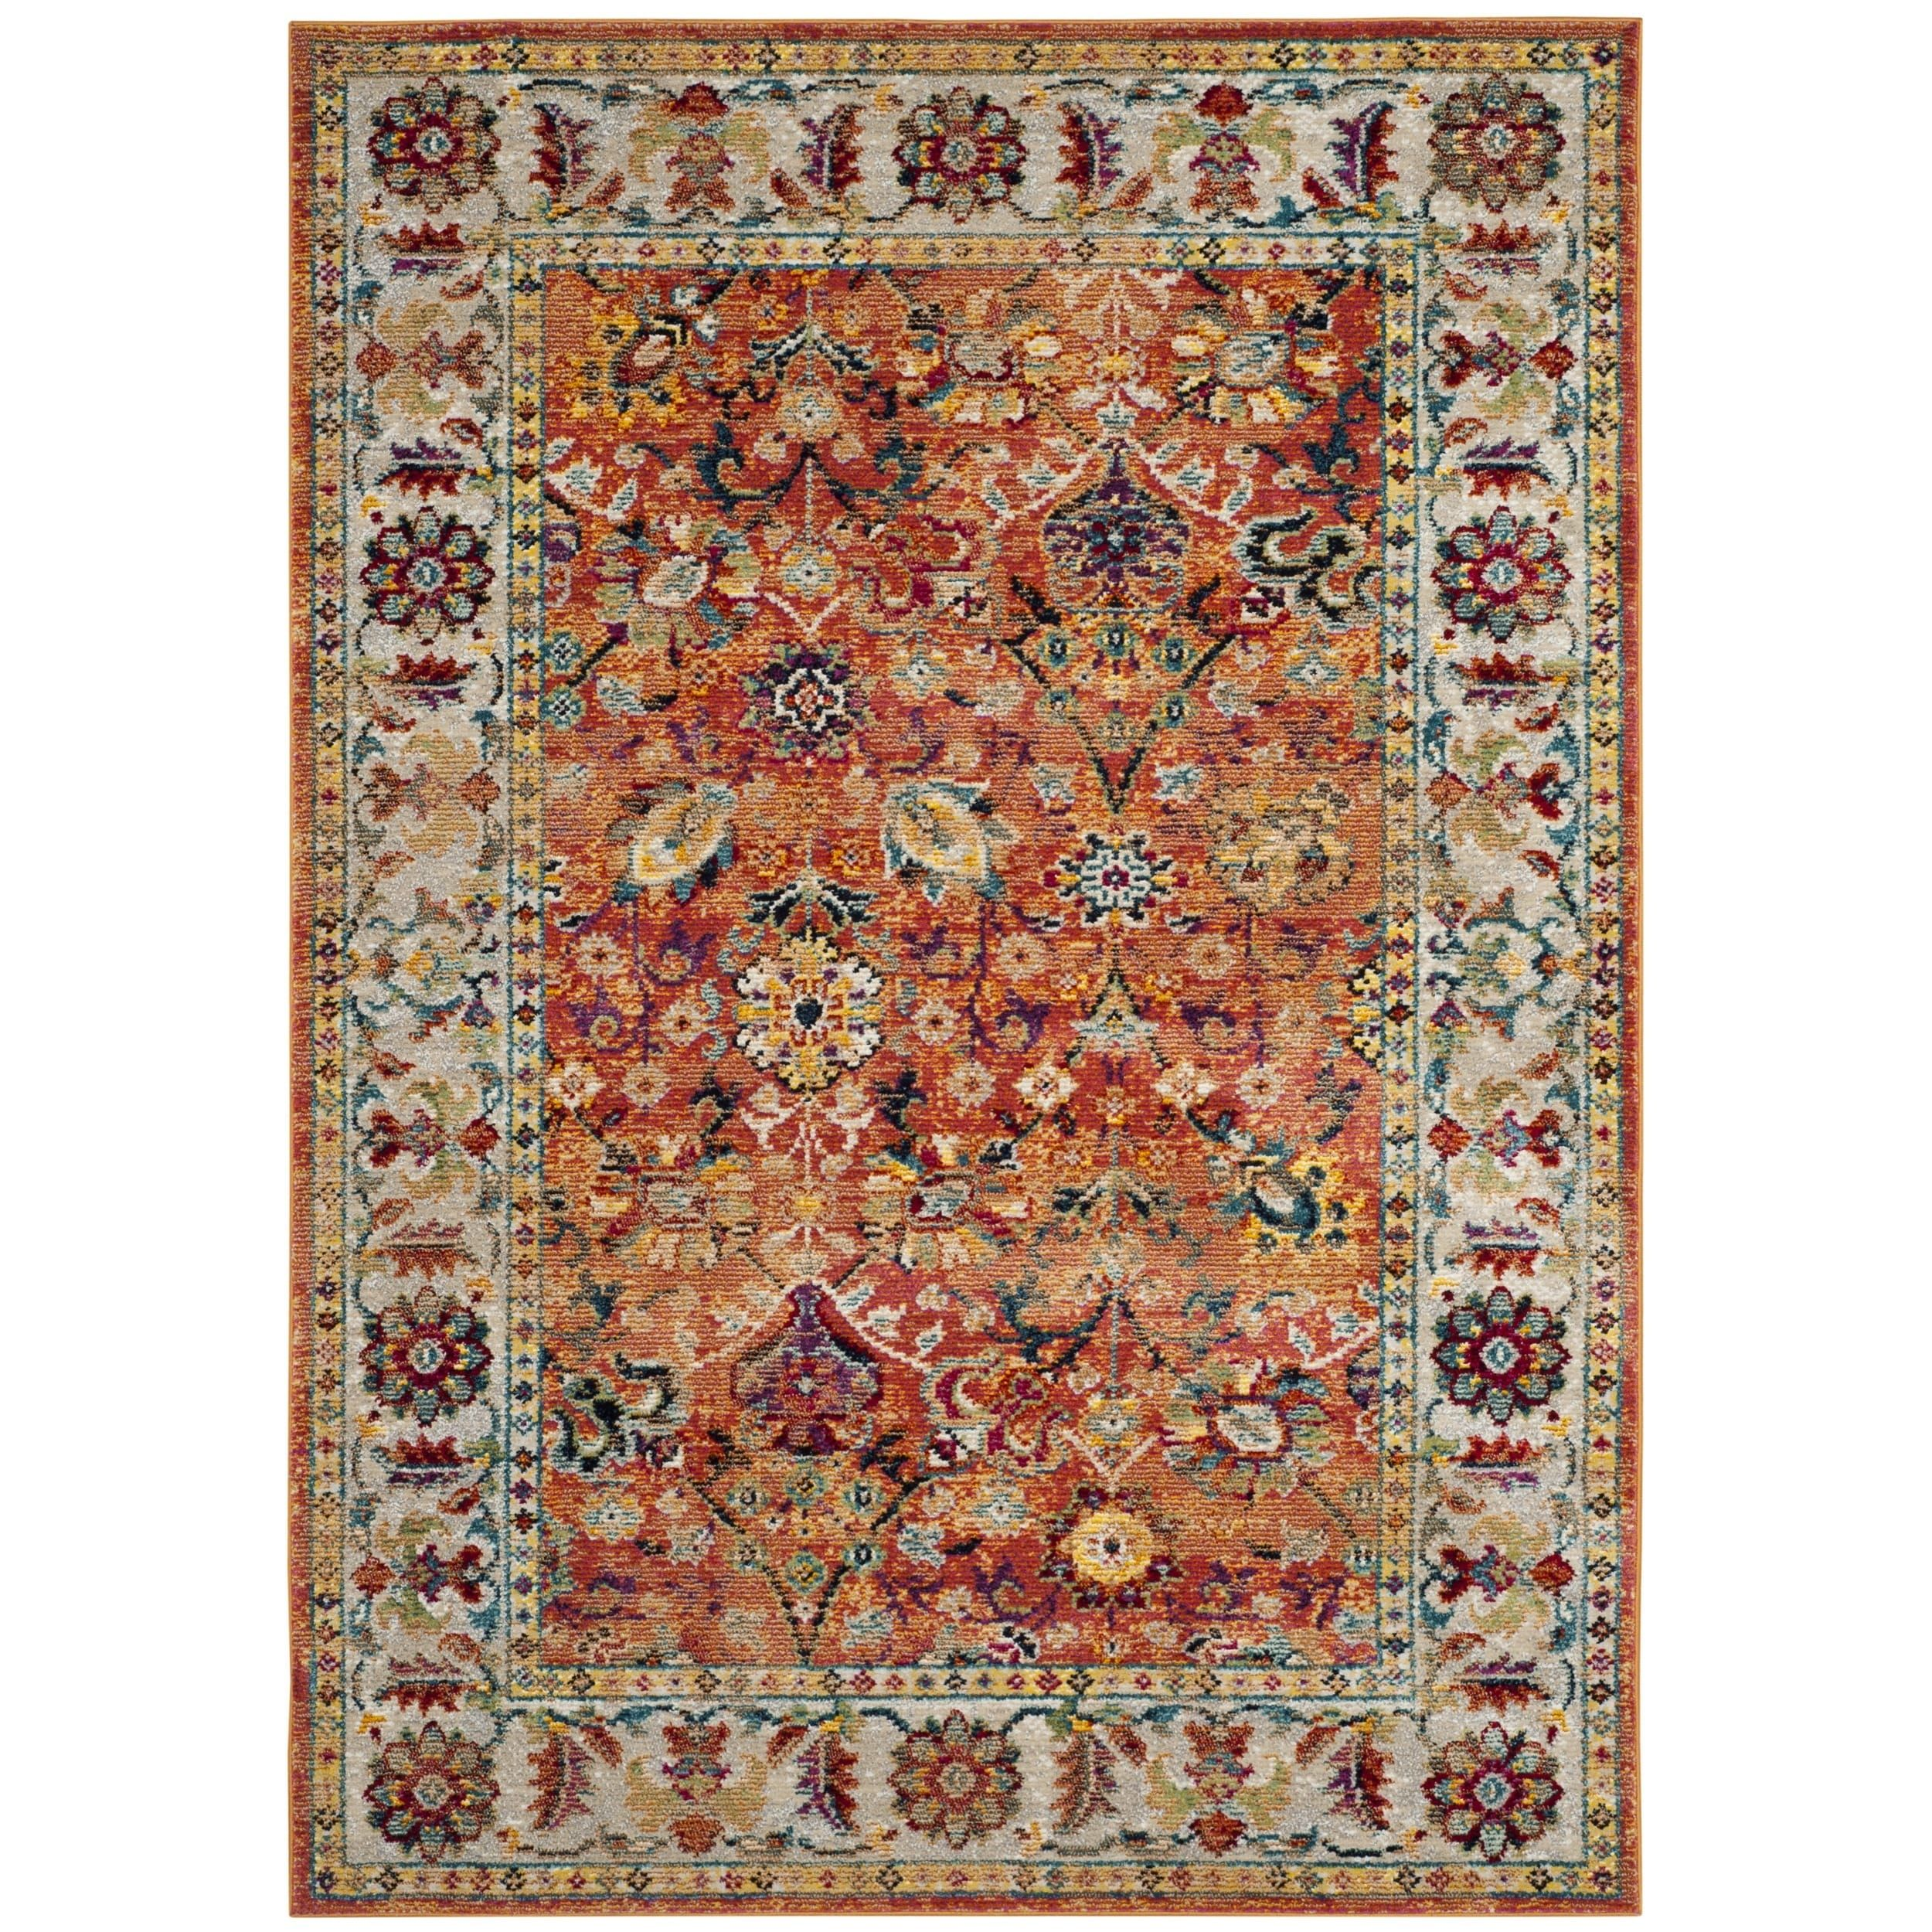 smaller of thrift store to so in img one a not another layering splurge slightly layered with last the new rugs hunting on found same decor month and kept bohemian m home price i rug